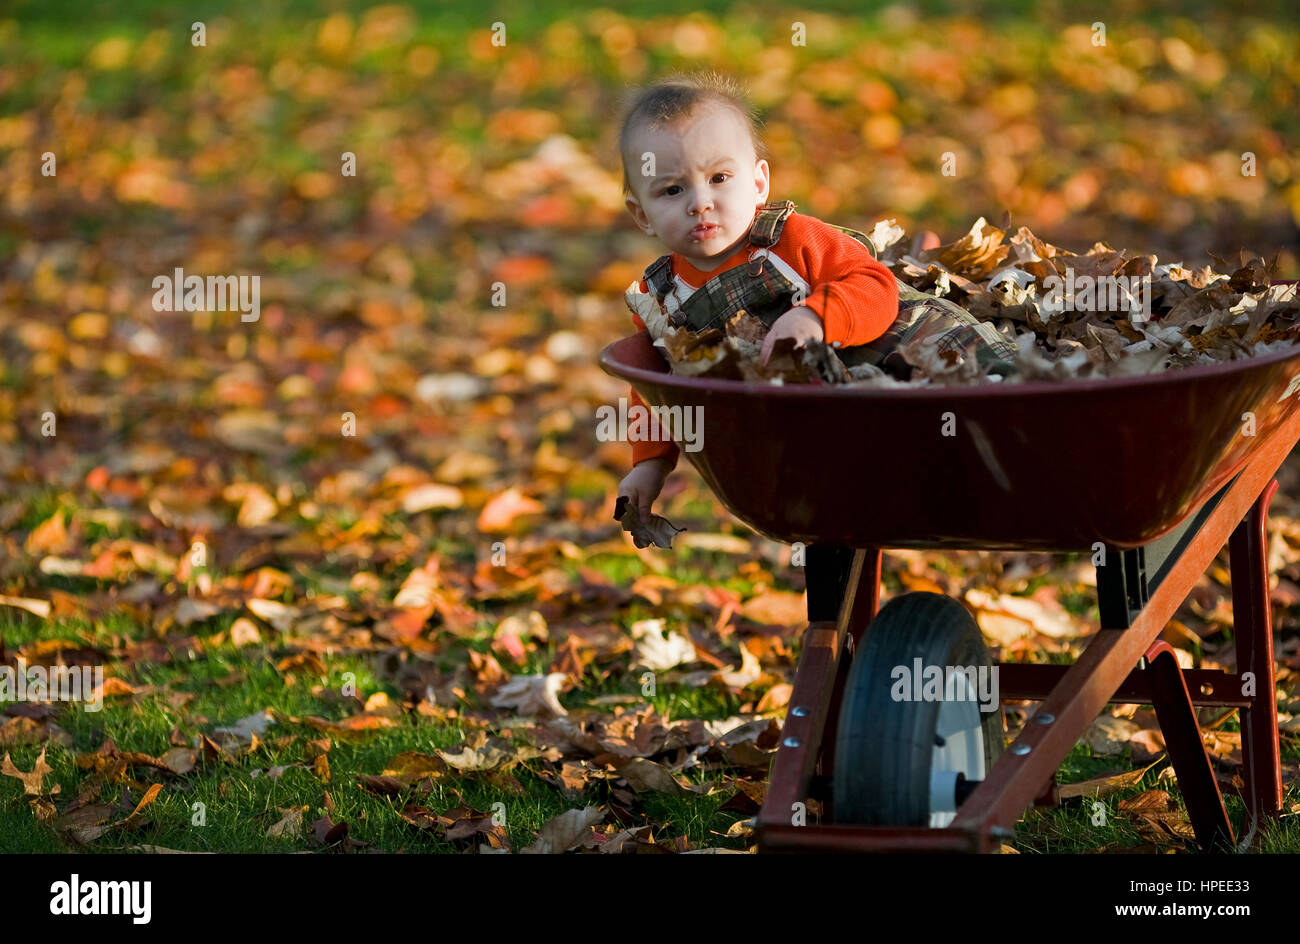 6 month old boy leans over the side of a wheelbarrow among colorful autumn leaves. - Stock Image